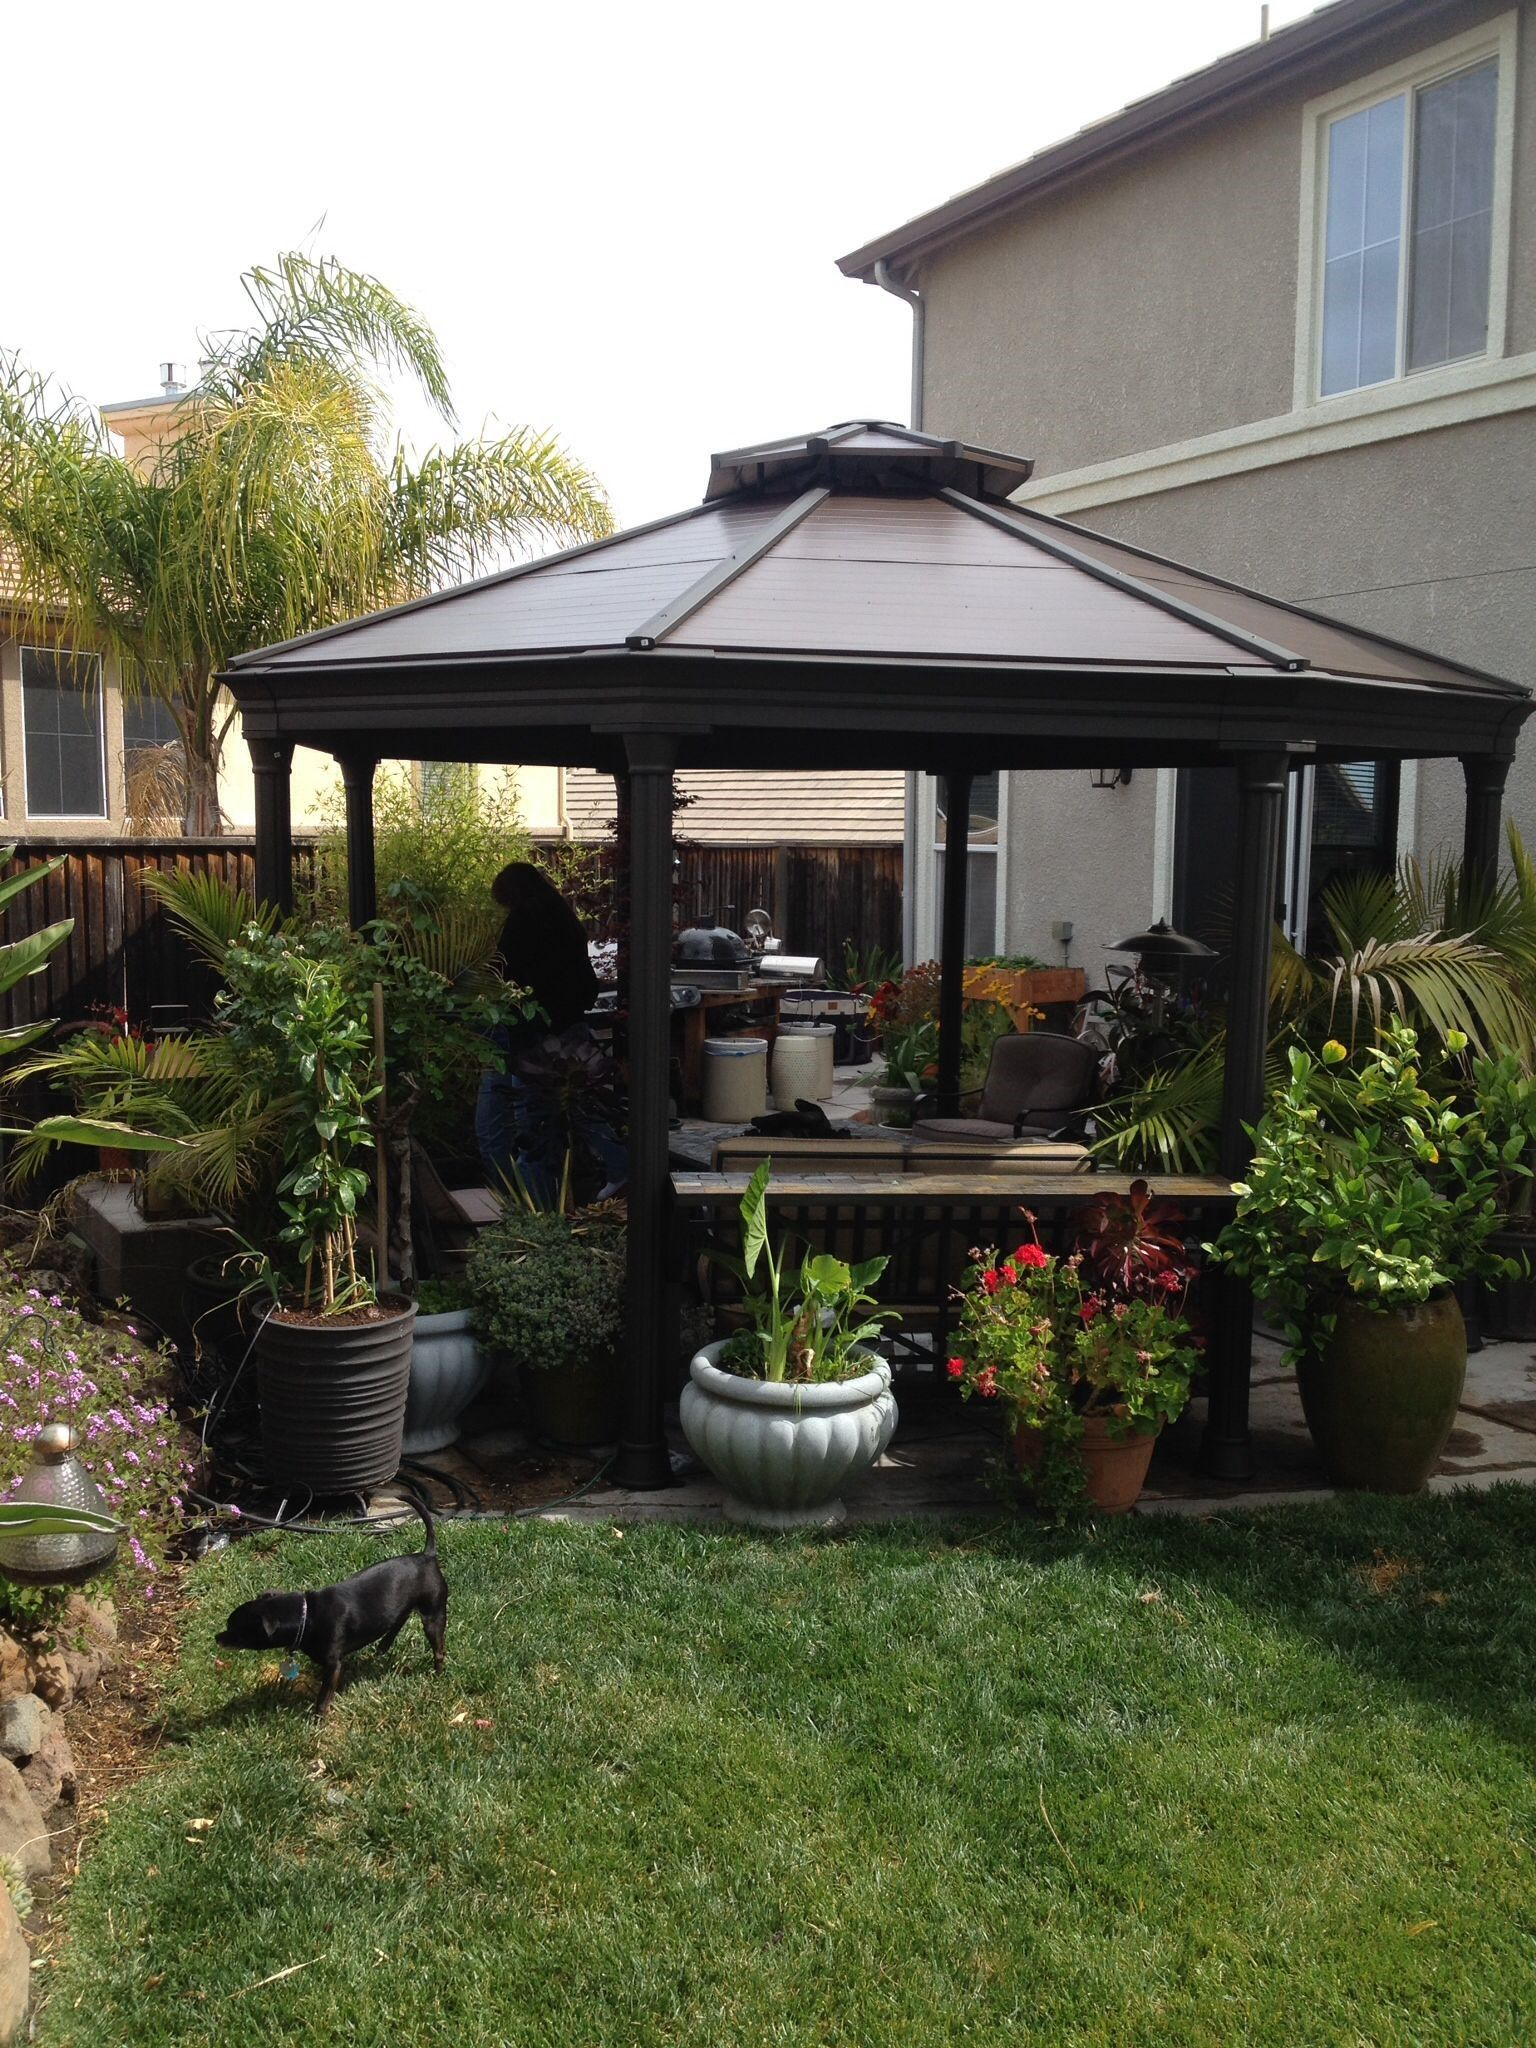 Carport Costco 10x20 Car Canopy Costco Backyard Gazebo Gazebo Backyard